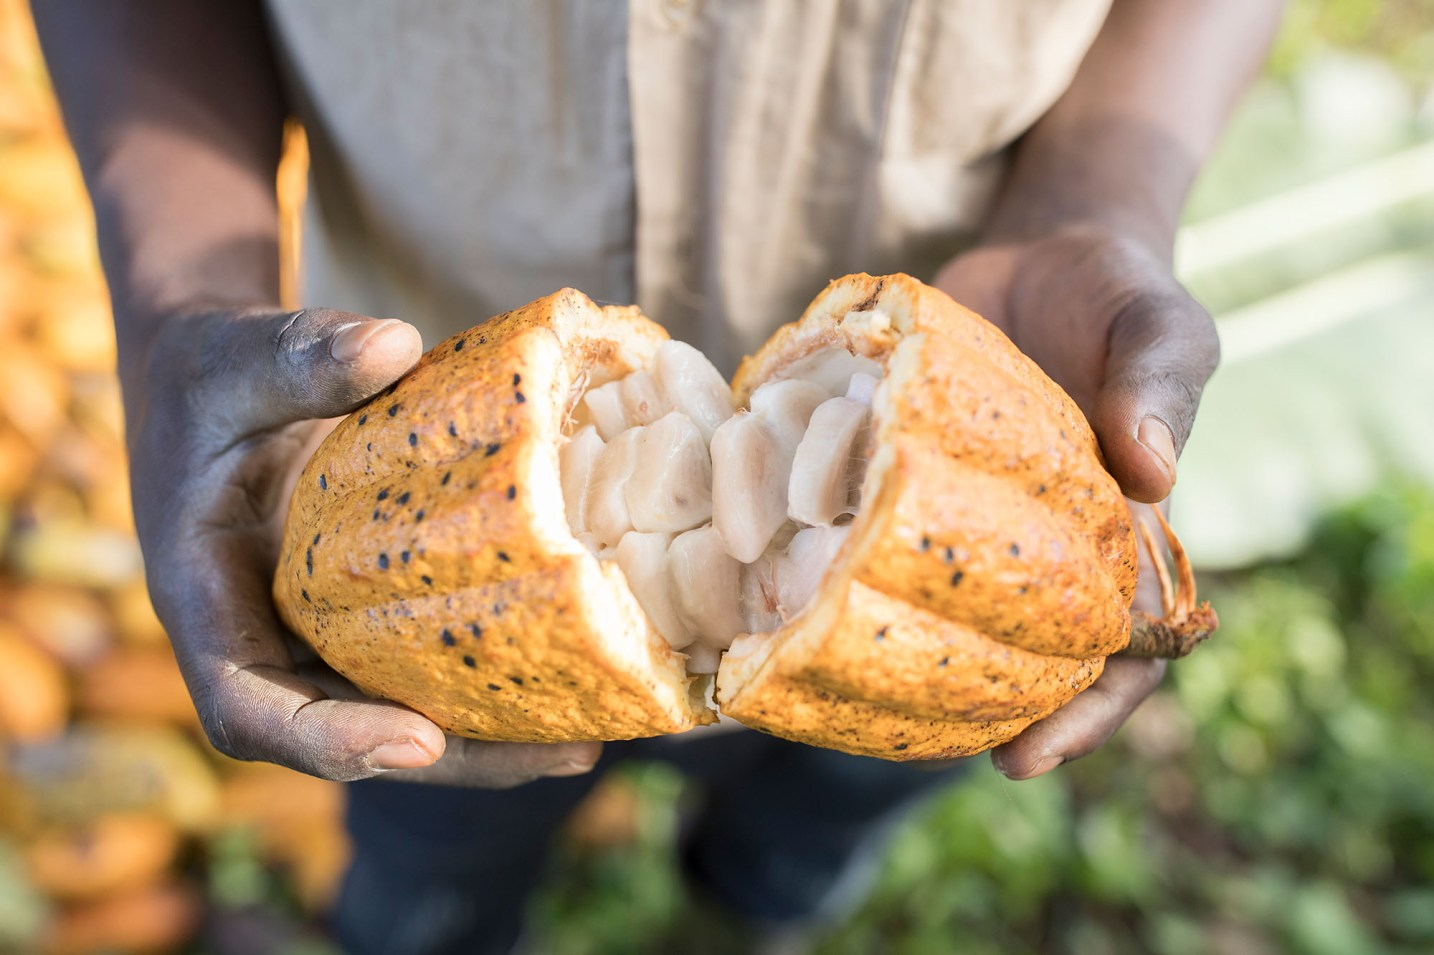 Cocoa harvest in Mukono District, Uganda.